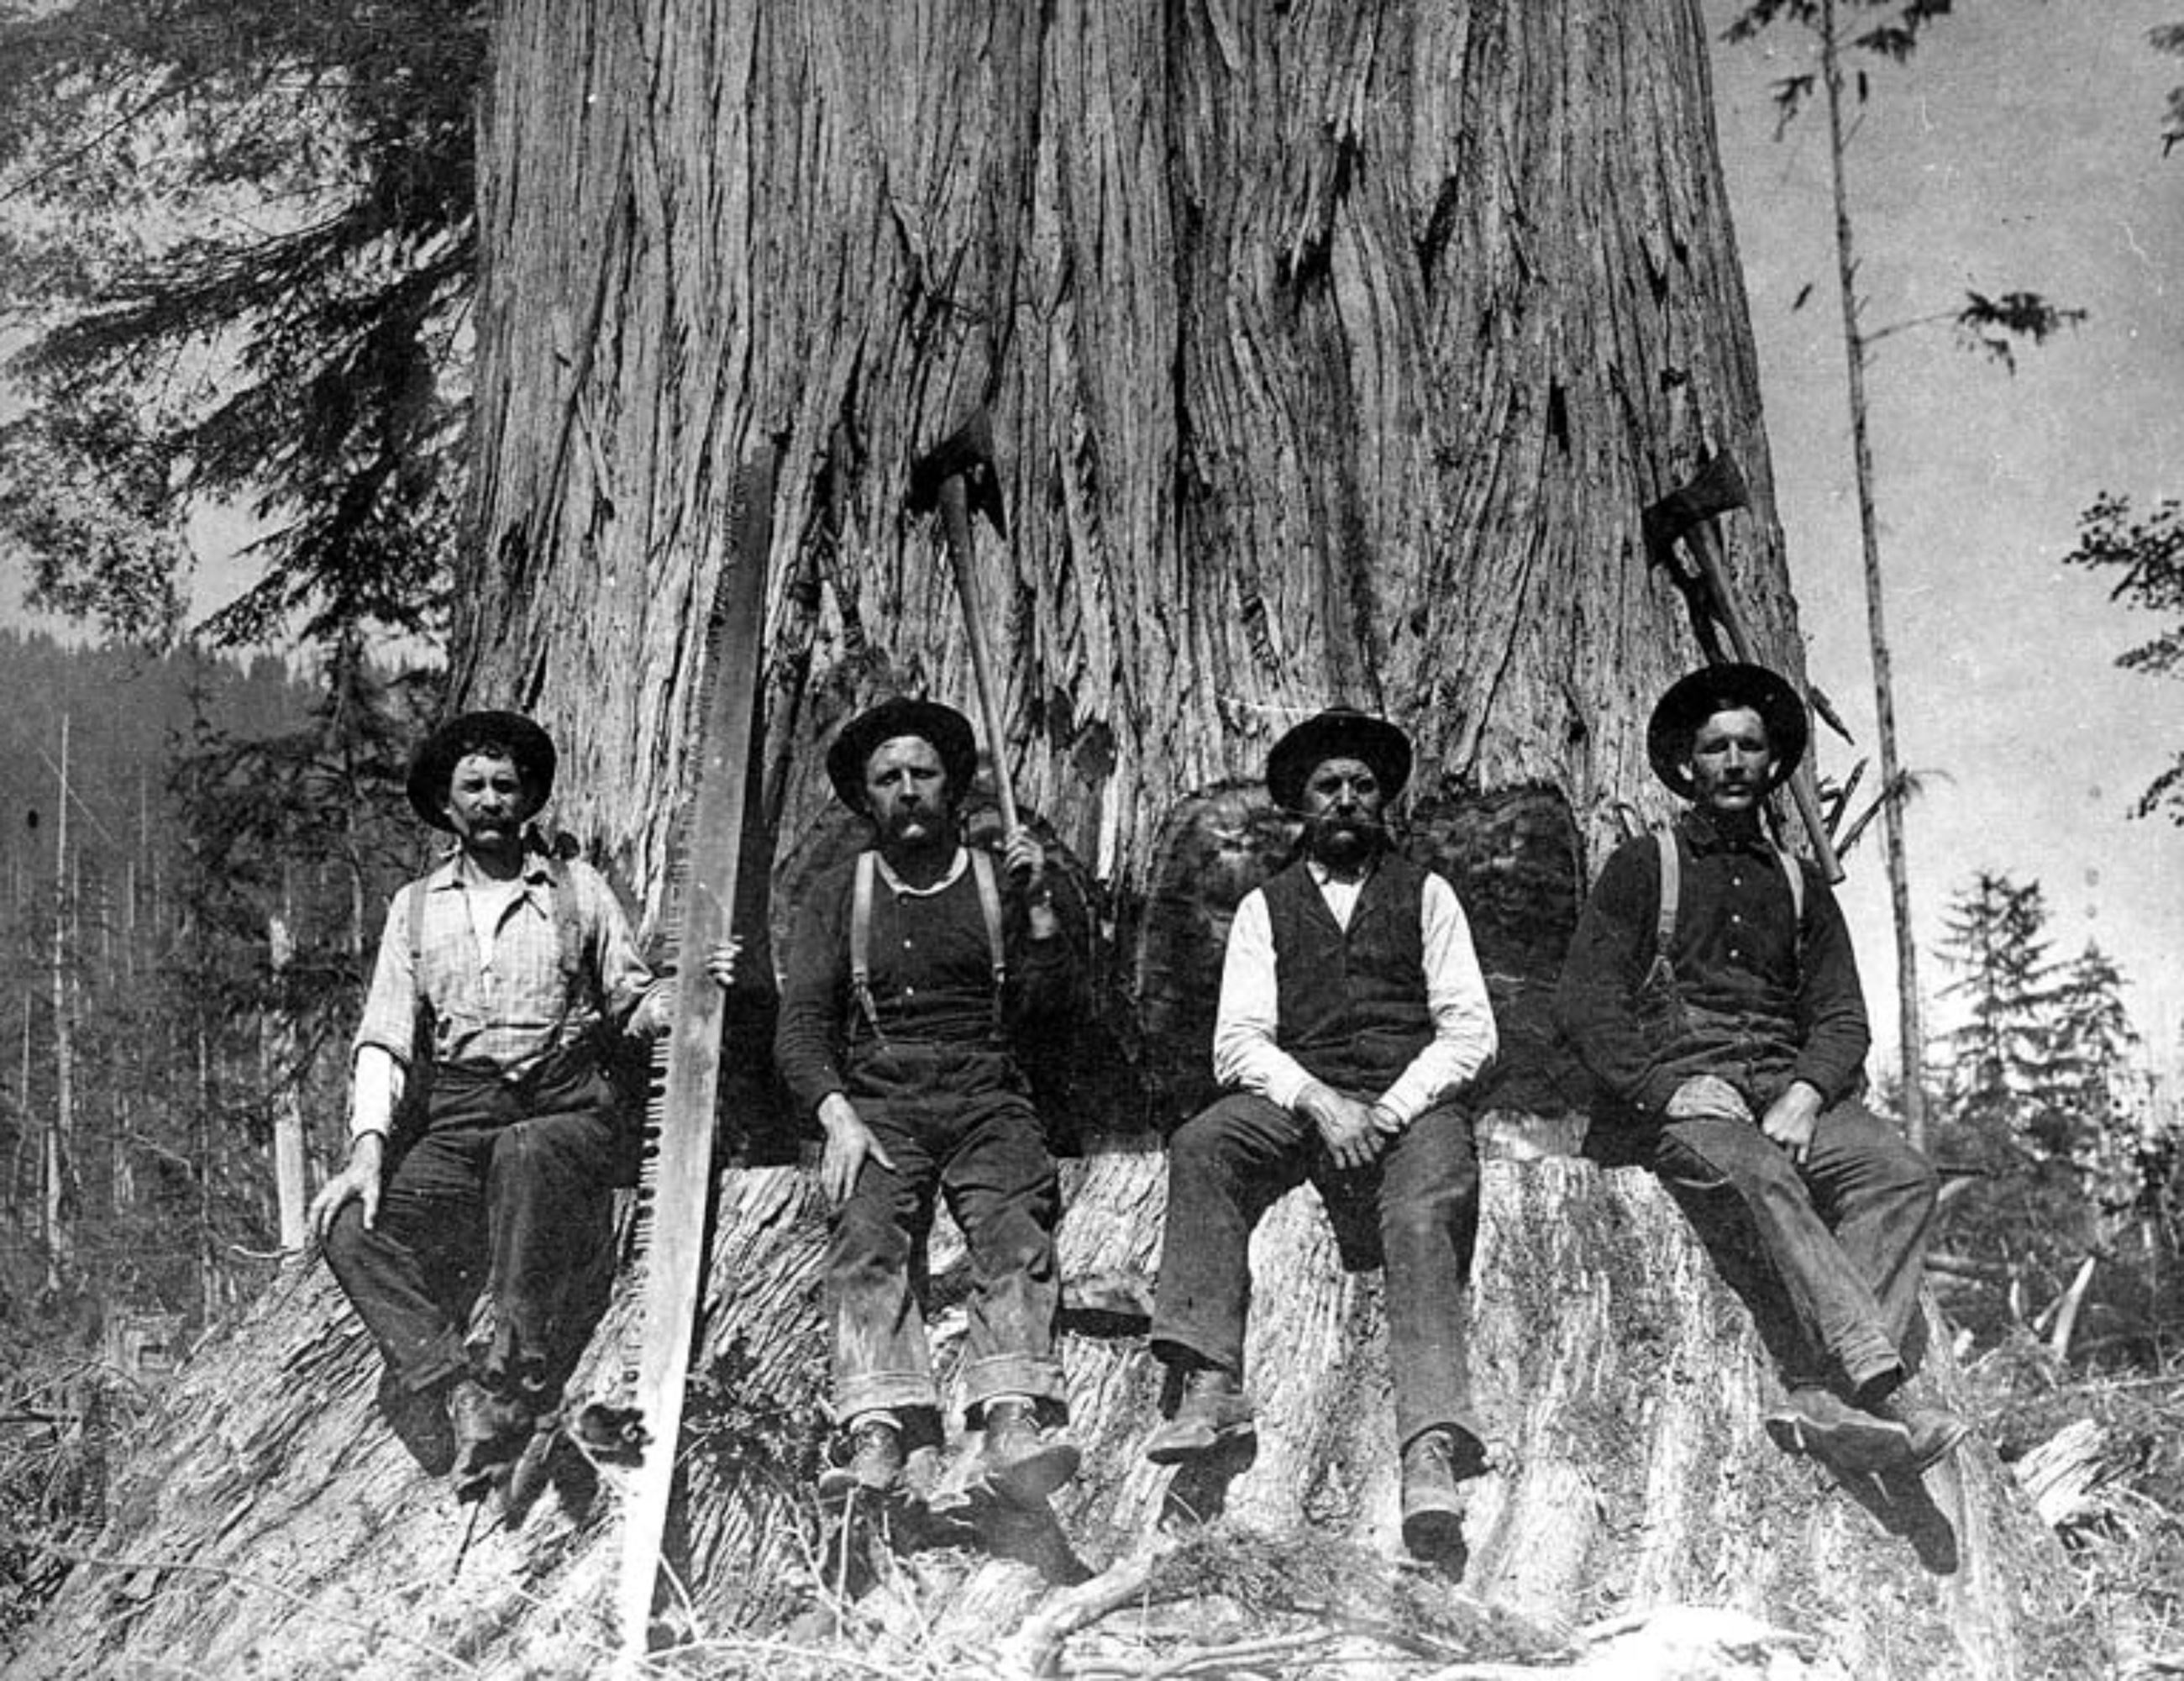 Historical Photo of Four Loggers